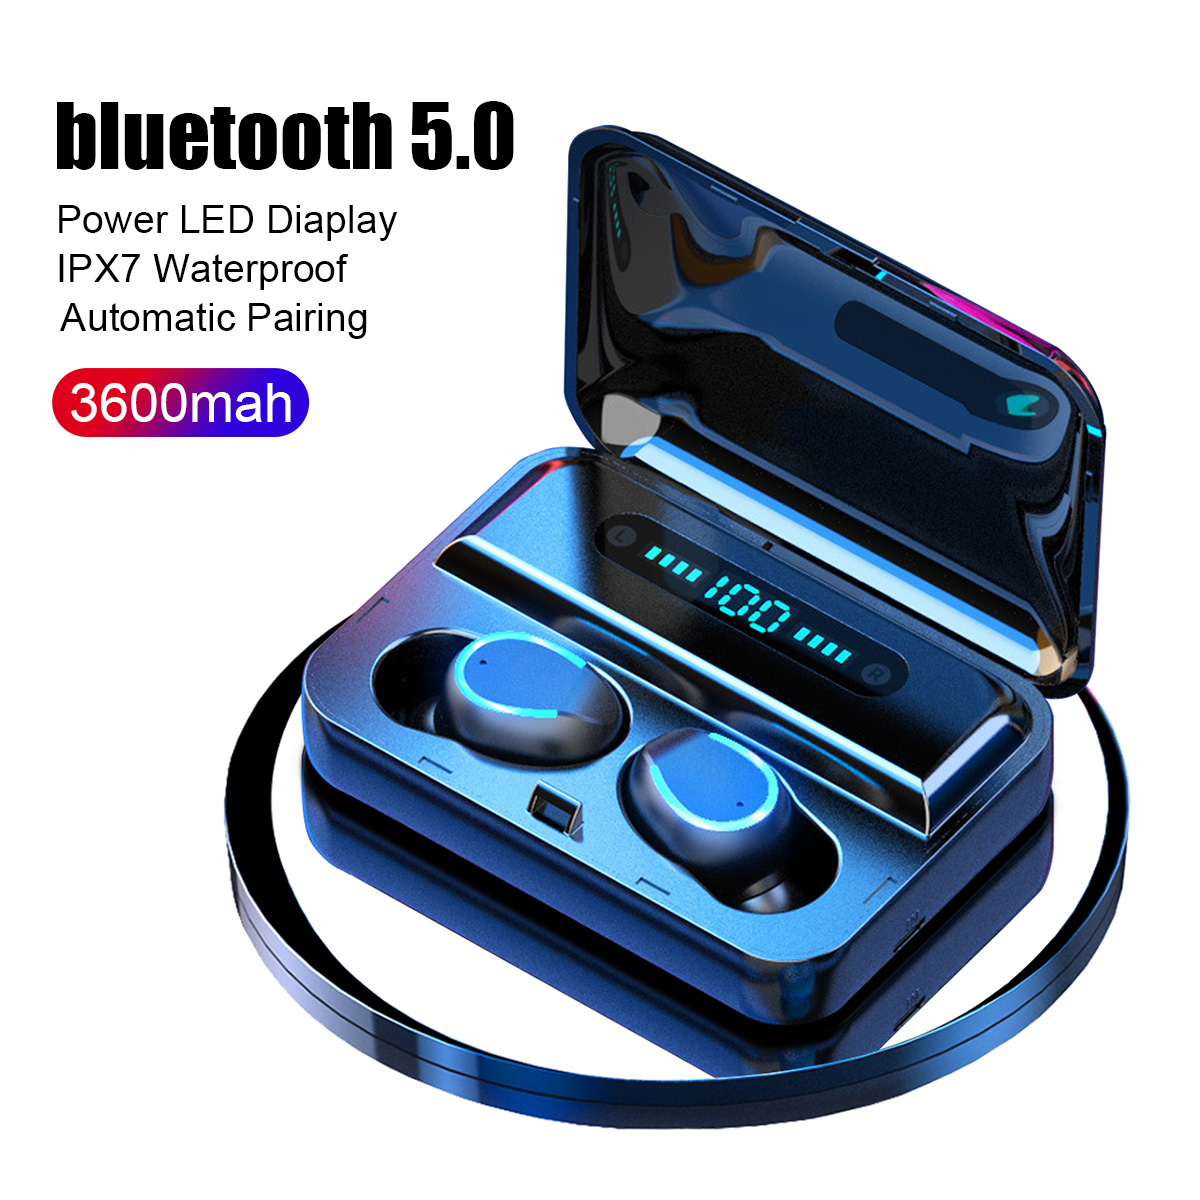 3600mAh TWS Wireless Earphones Bluetooth 5.0 Earphone Power Display Touch Control Stereo Cordless Earbuds Headset Charging Box